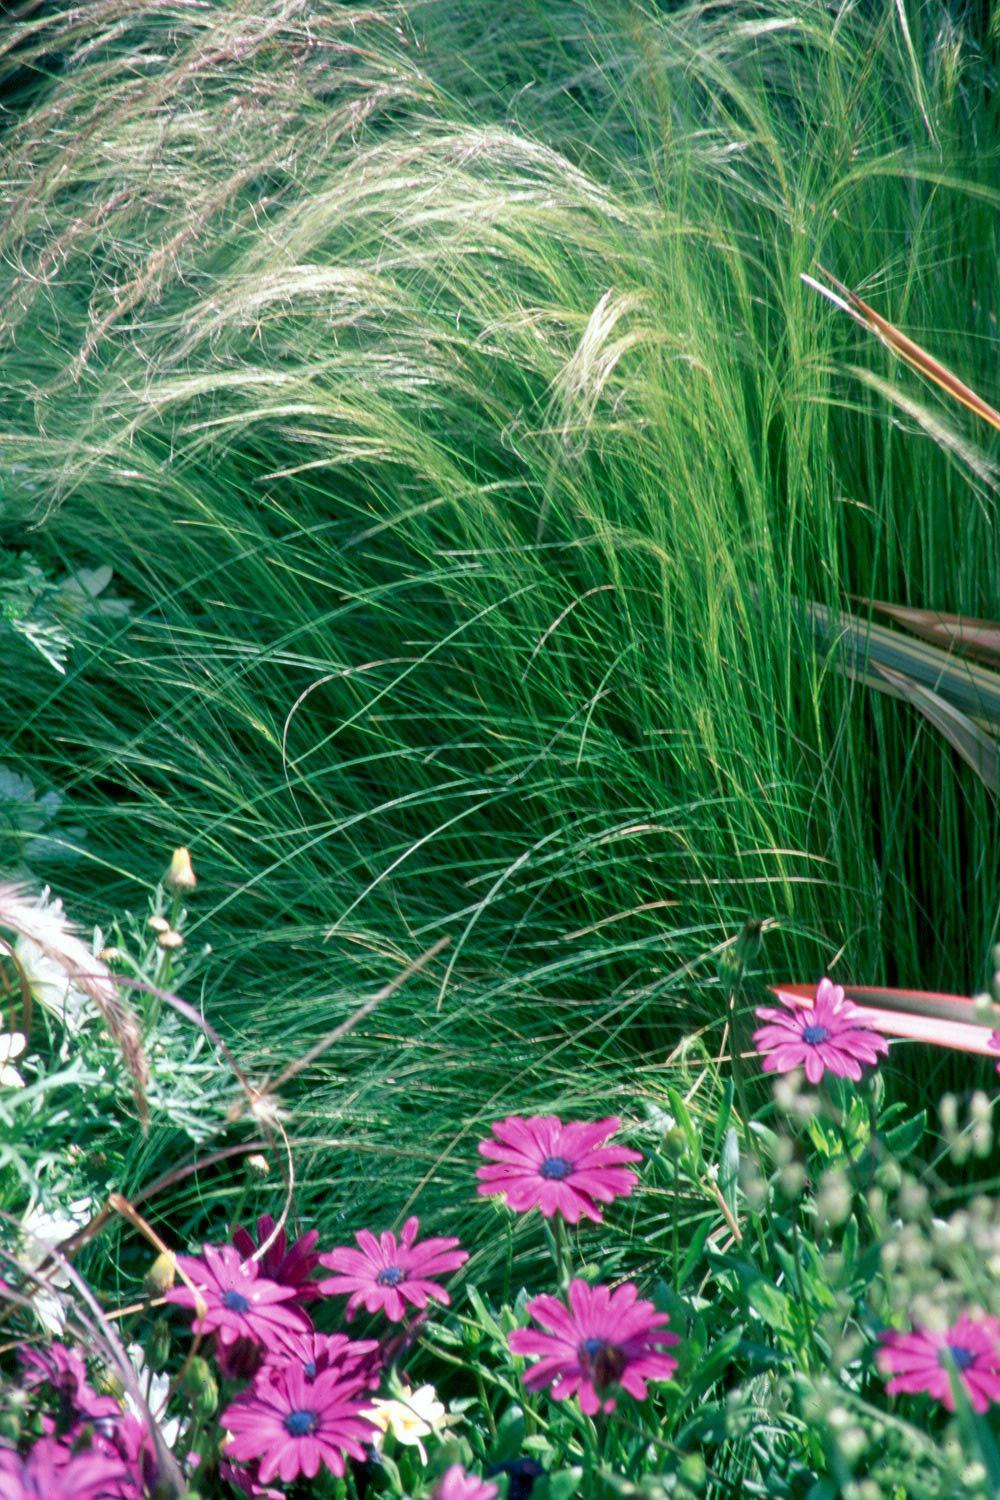 The silky, hair-like blossoms of the Mexican feather grass move gracefully with the gentle breeze.